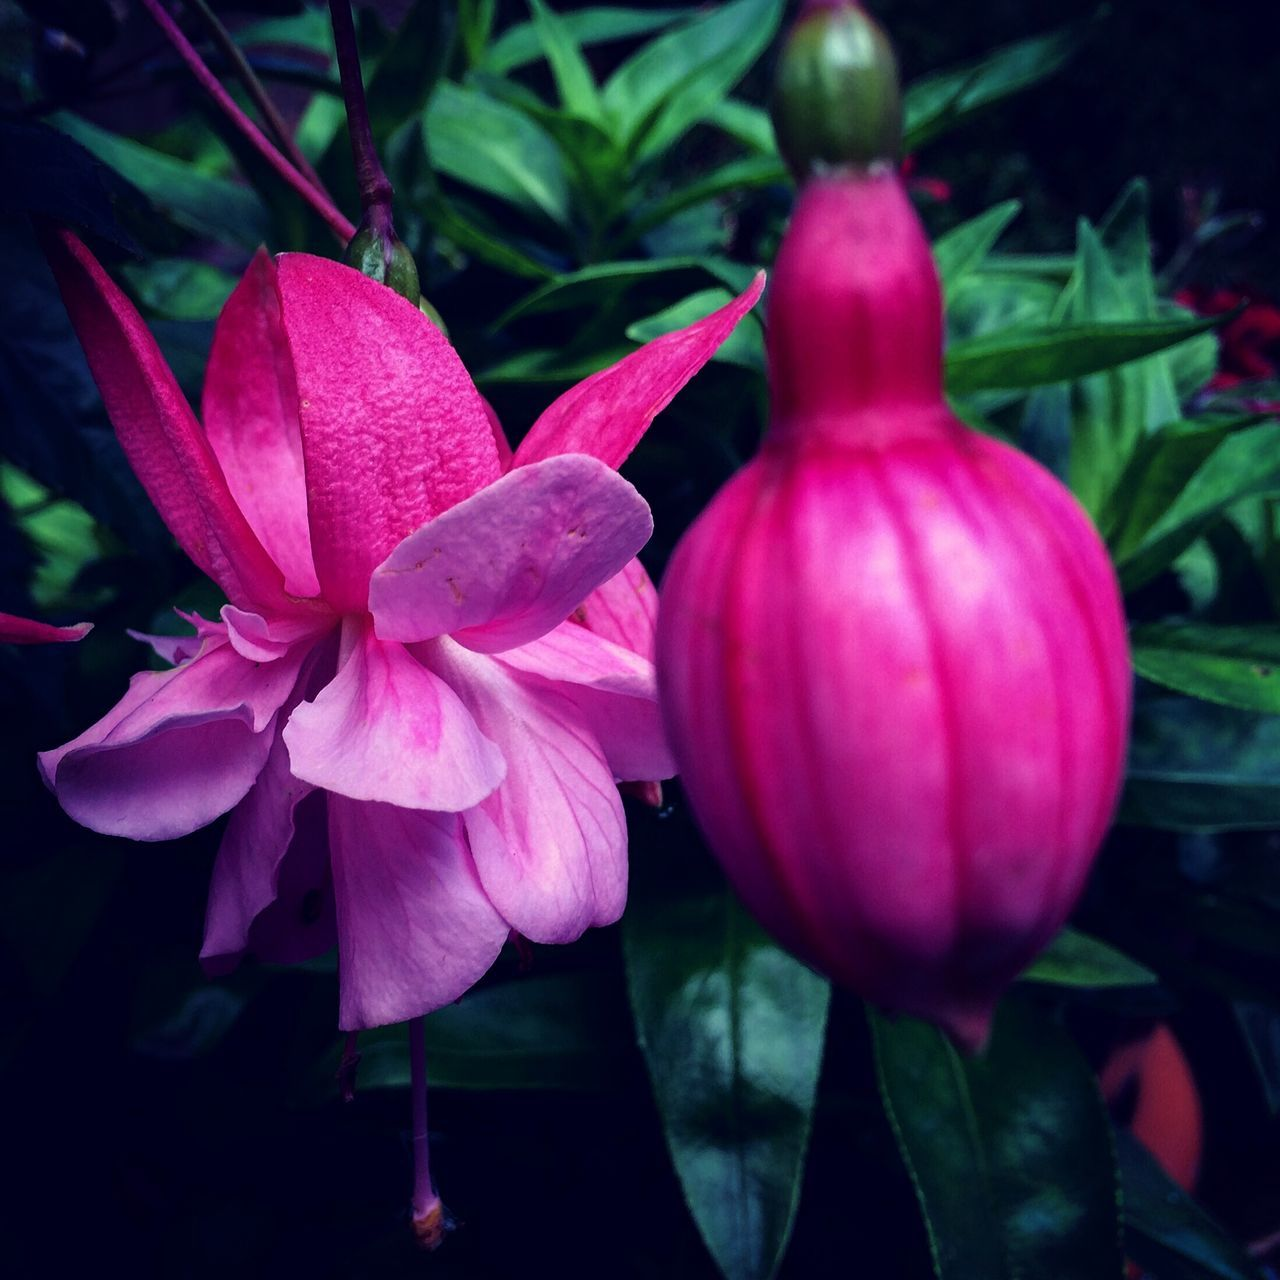 flower, petal, pink color, growth, no people, freshness, beauty in nature, nature, close-up, fragility, plant, flower head, day, outdoors